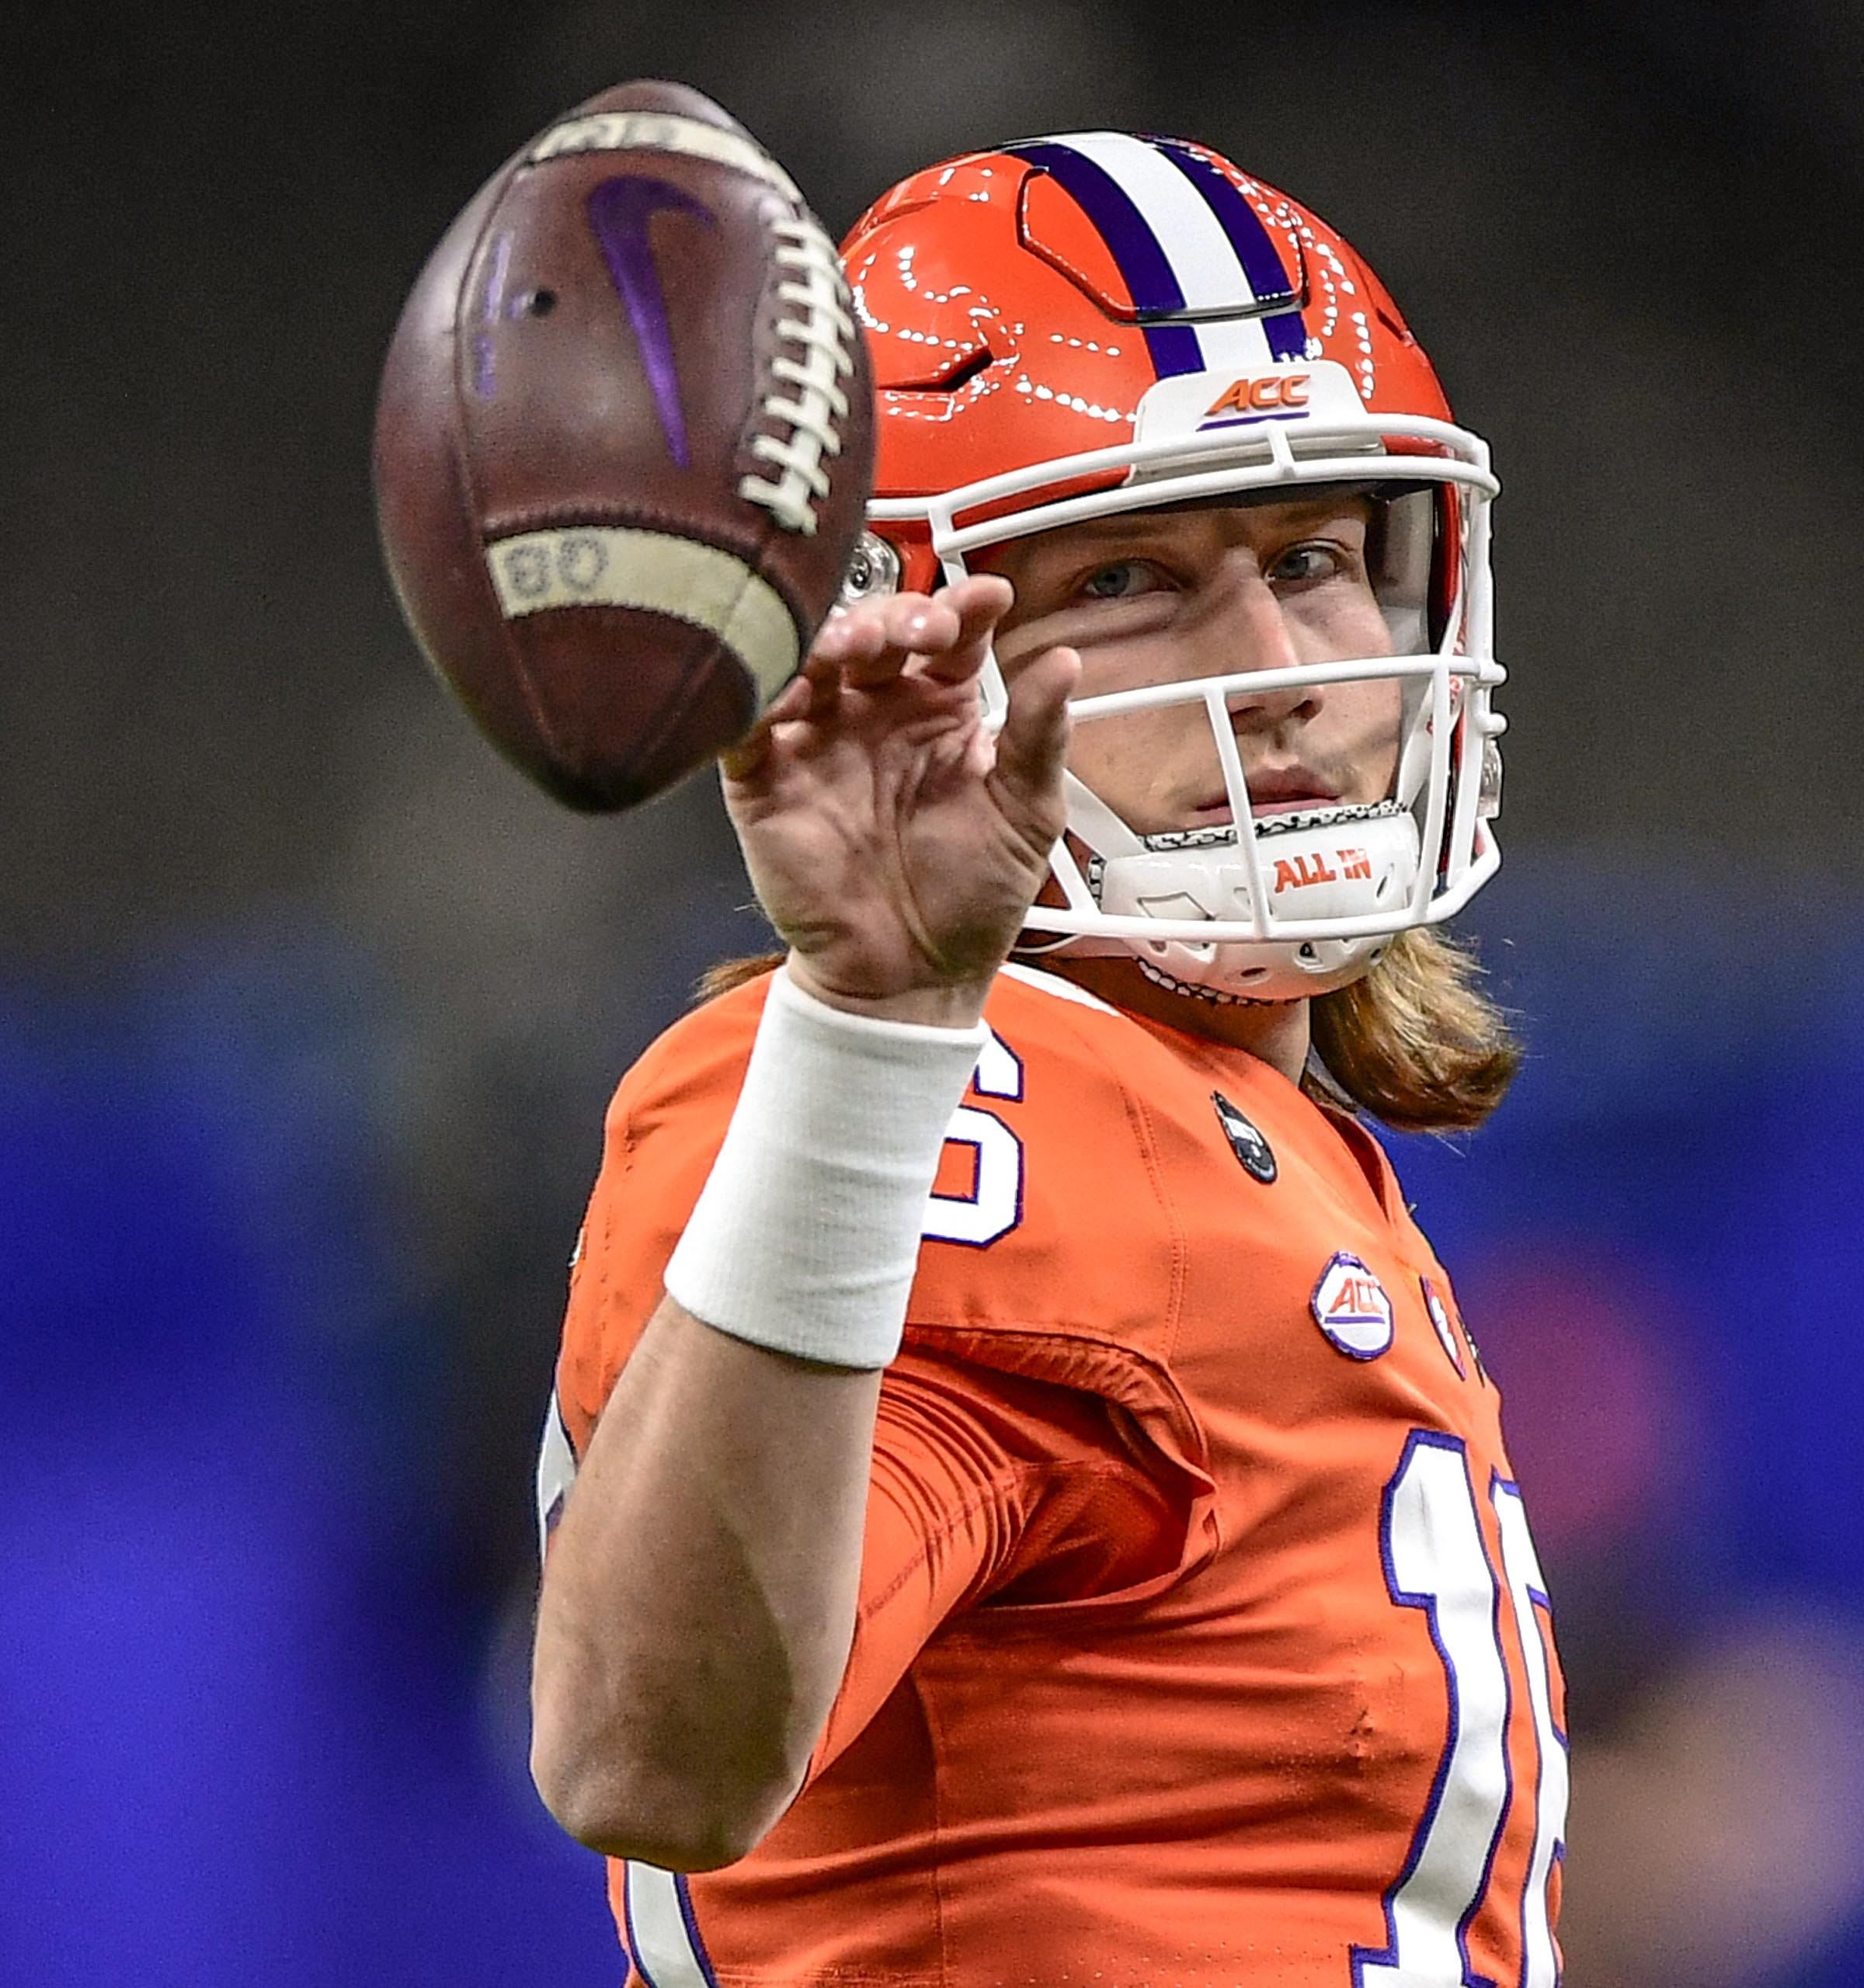 A study published in February found that former Clemson quarterback Trevor Lawrence, who was the top pick in the NFL draft, had the highest-valued Instagram account among college athletes with an annual value of $331,272.